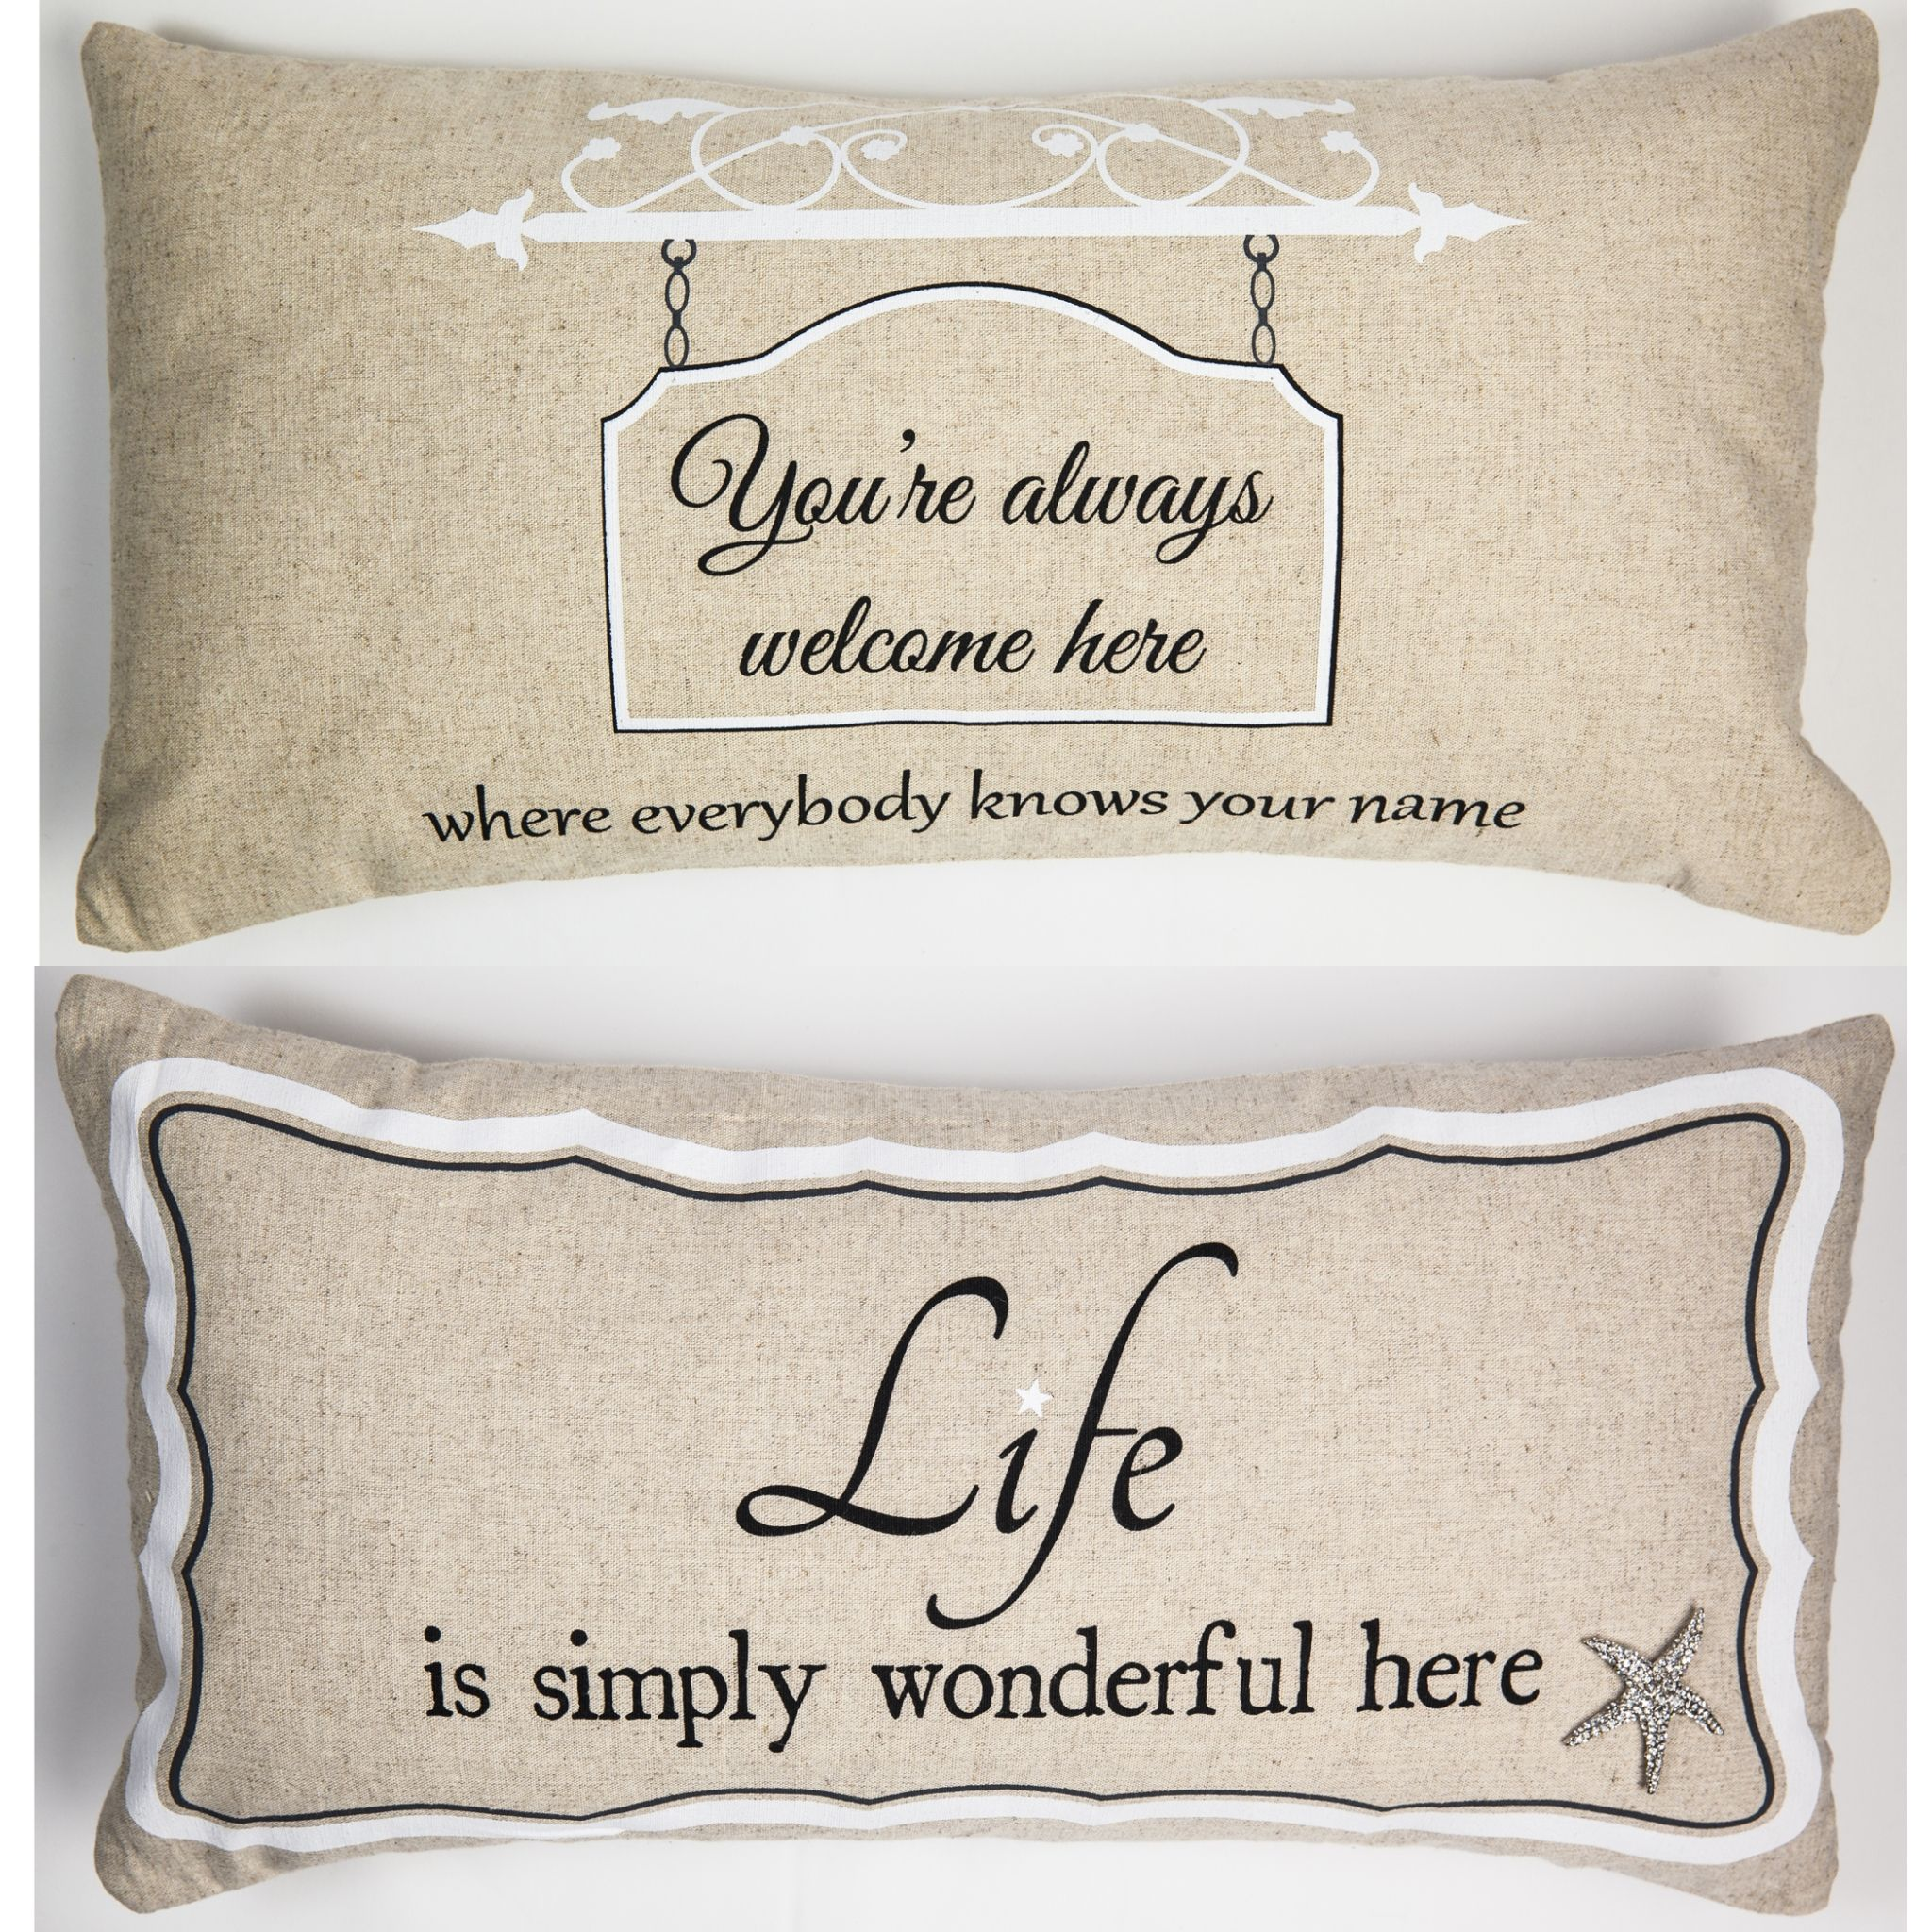 Pin by Evelyn Hope Collection on Beach-Coastal Pillows, Decor ...